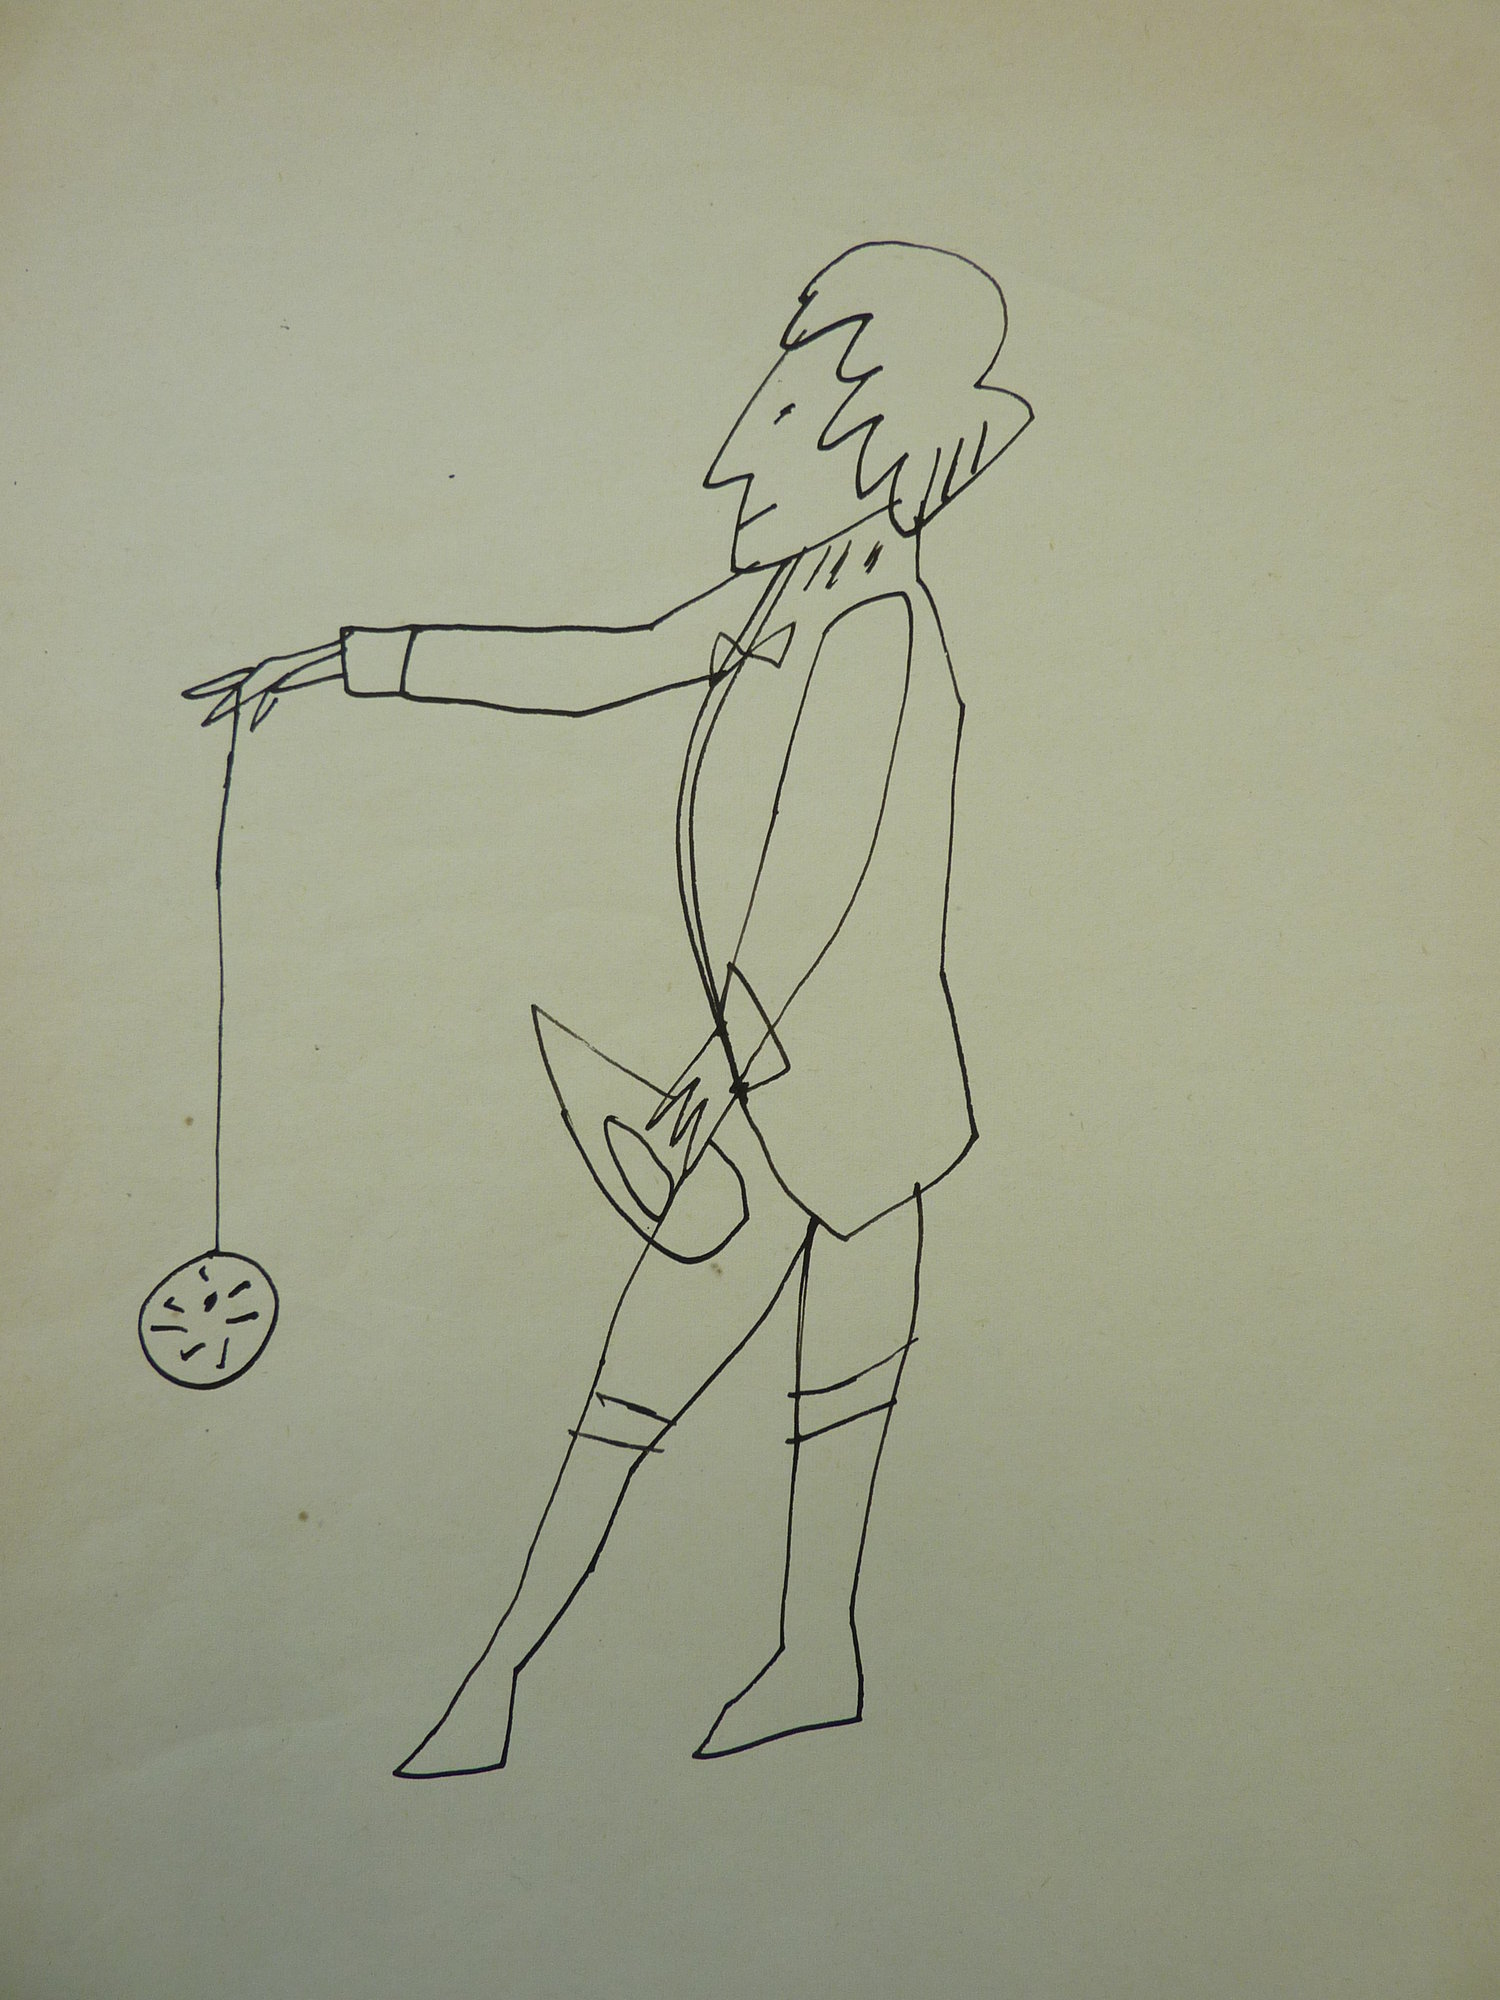 Andy Warhol work on paper of Standing Man with Yo-Yo